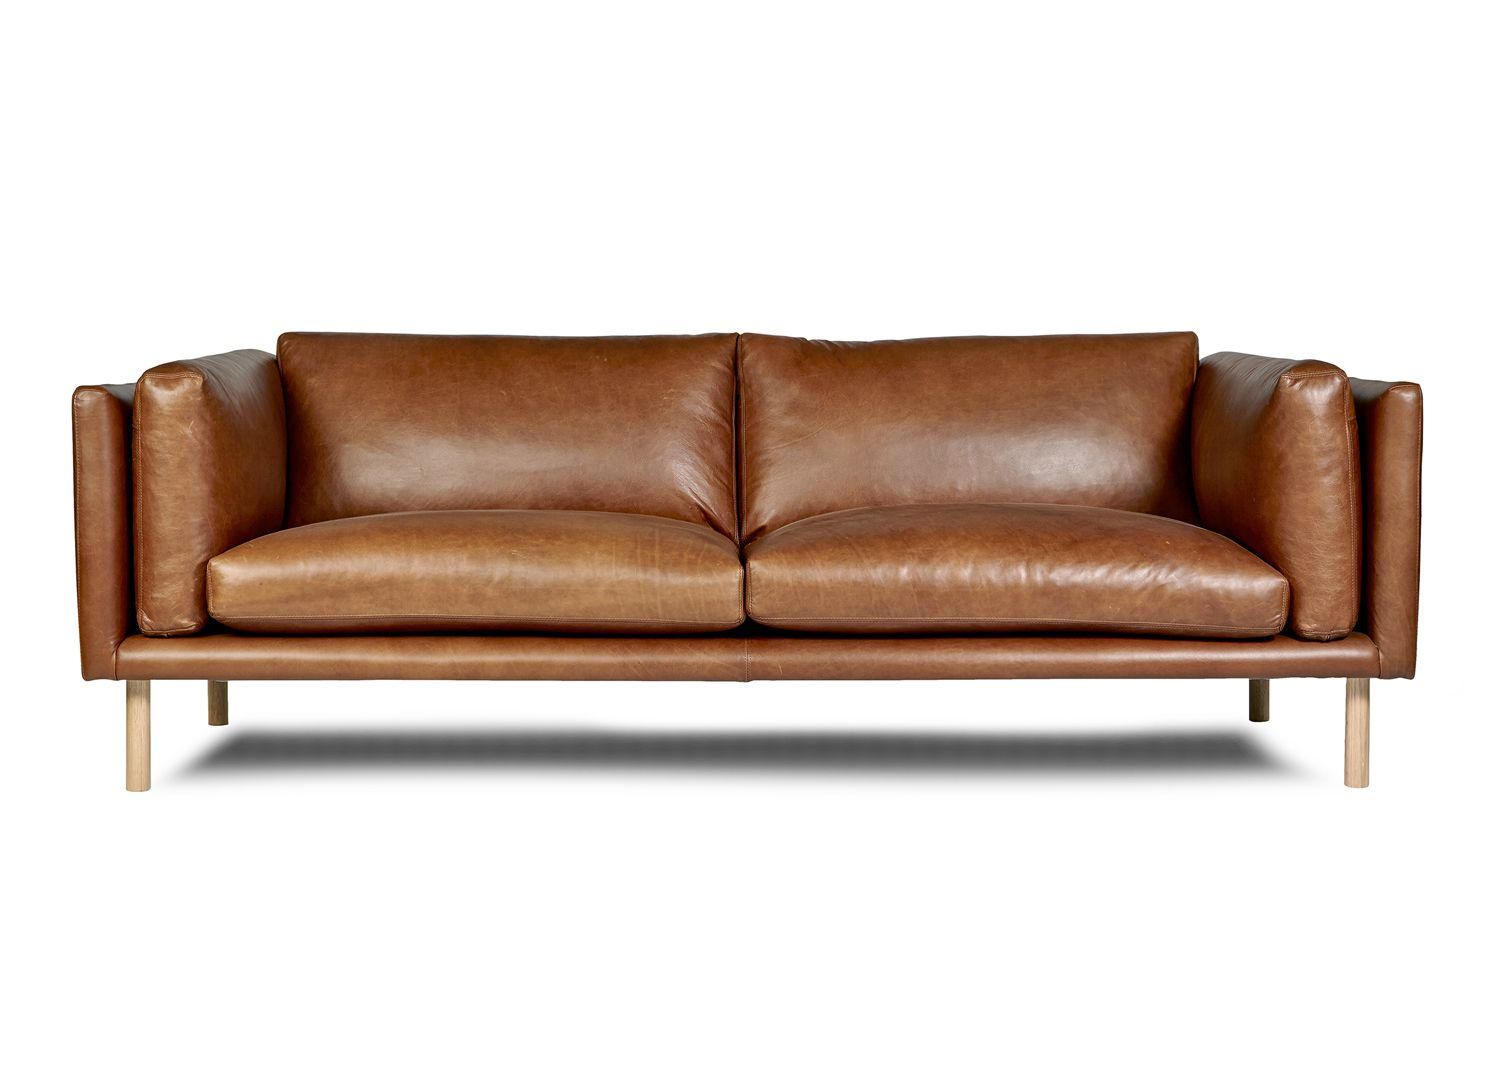 Quality Leather Sofa Beds Fabric Protector Pin By Arthur G On Contemporary Australian